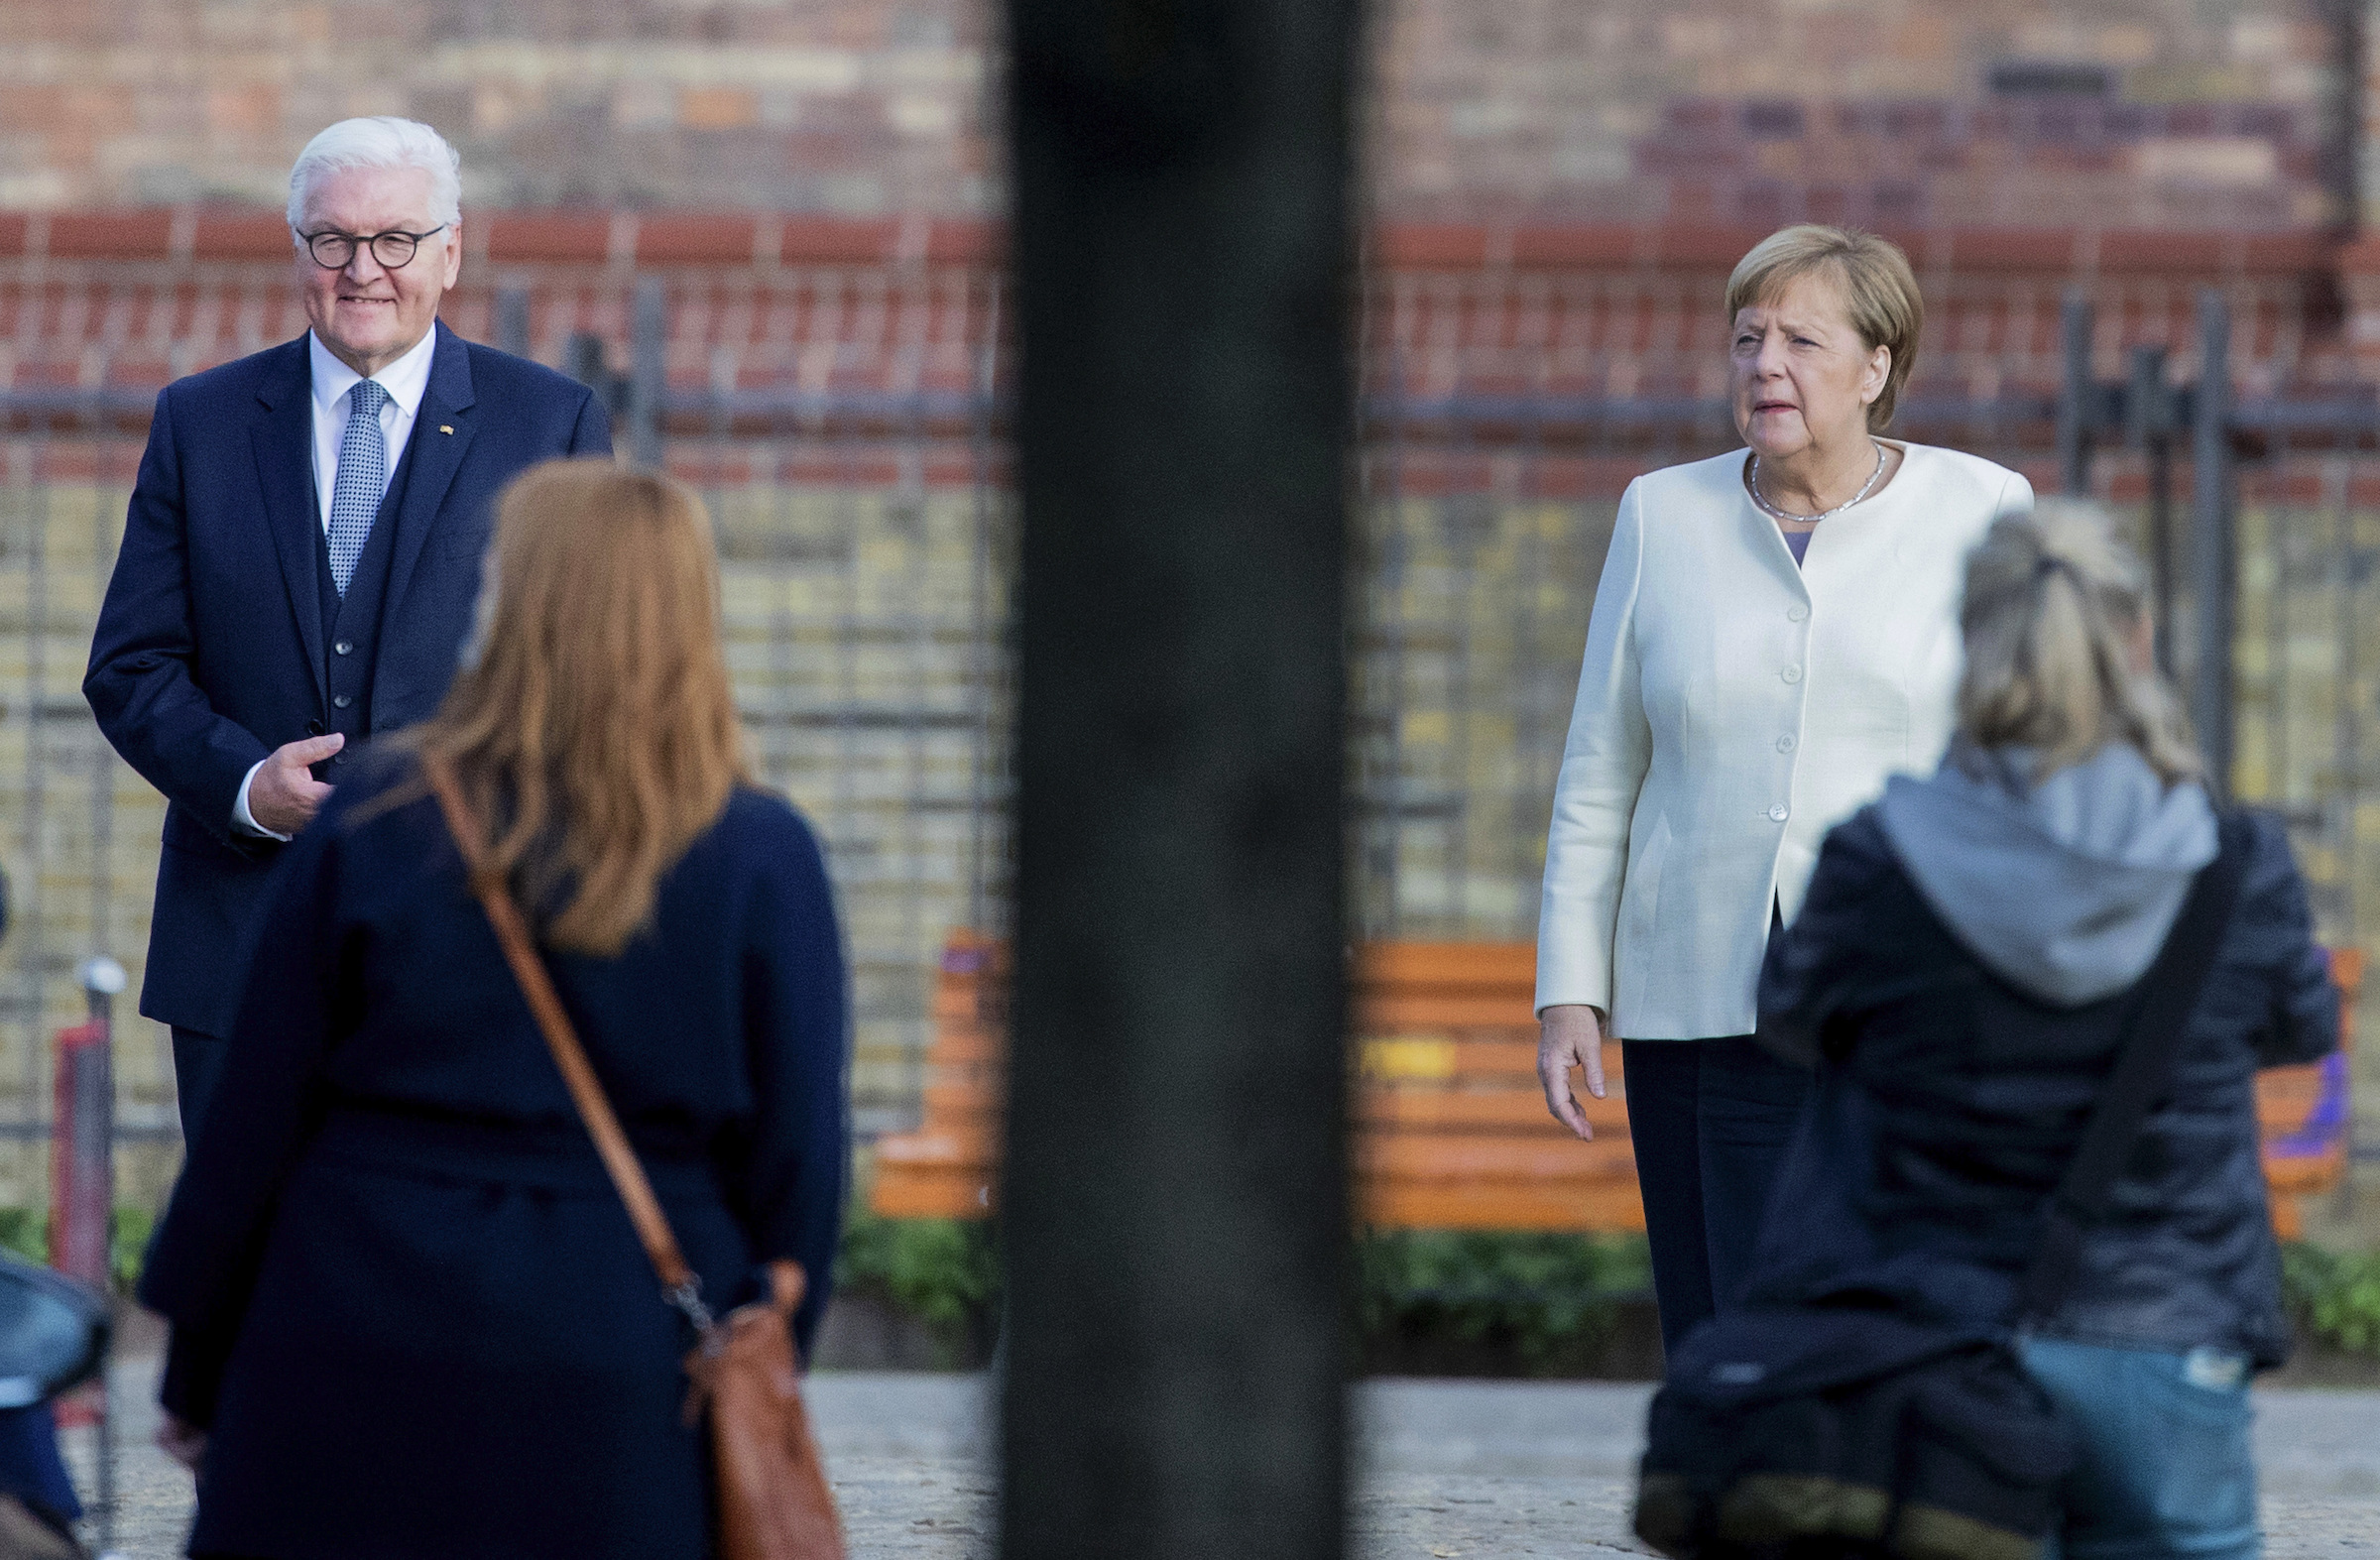 Federal President Frank-Walter Steinmeier and Federal Chancellor Angela Merkel (CDU) are standing in front of the church of St. Peter and Paul for a group photo before an ecumenical service on October 3.